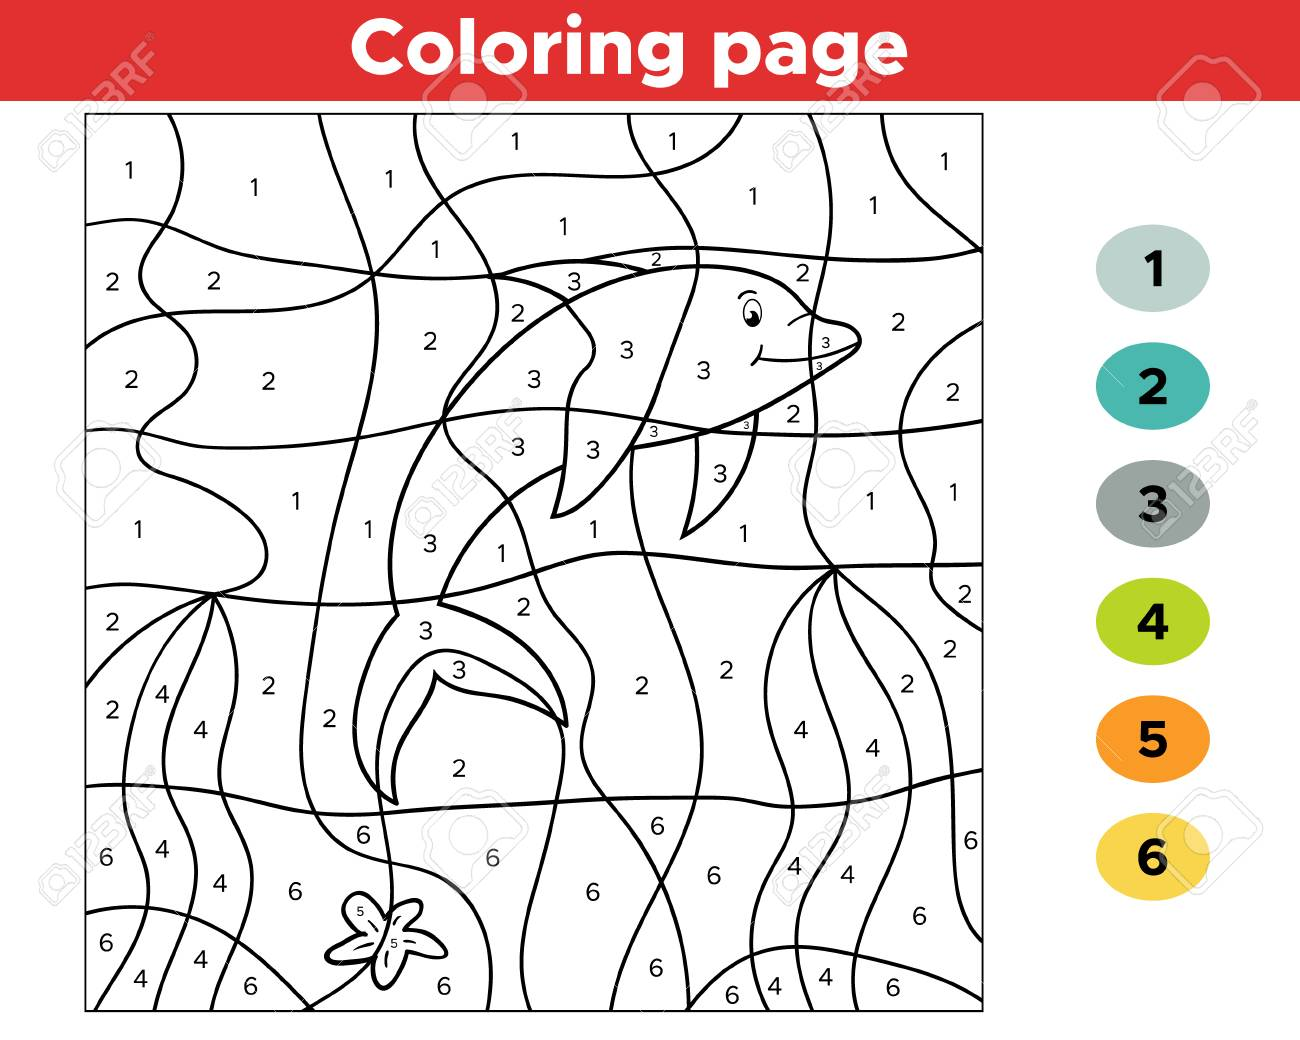 Number coloring page for children. Cartoon dolphin. Undersea world. - 112032600